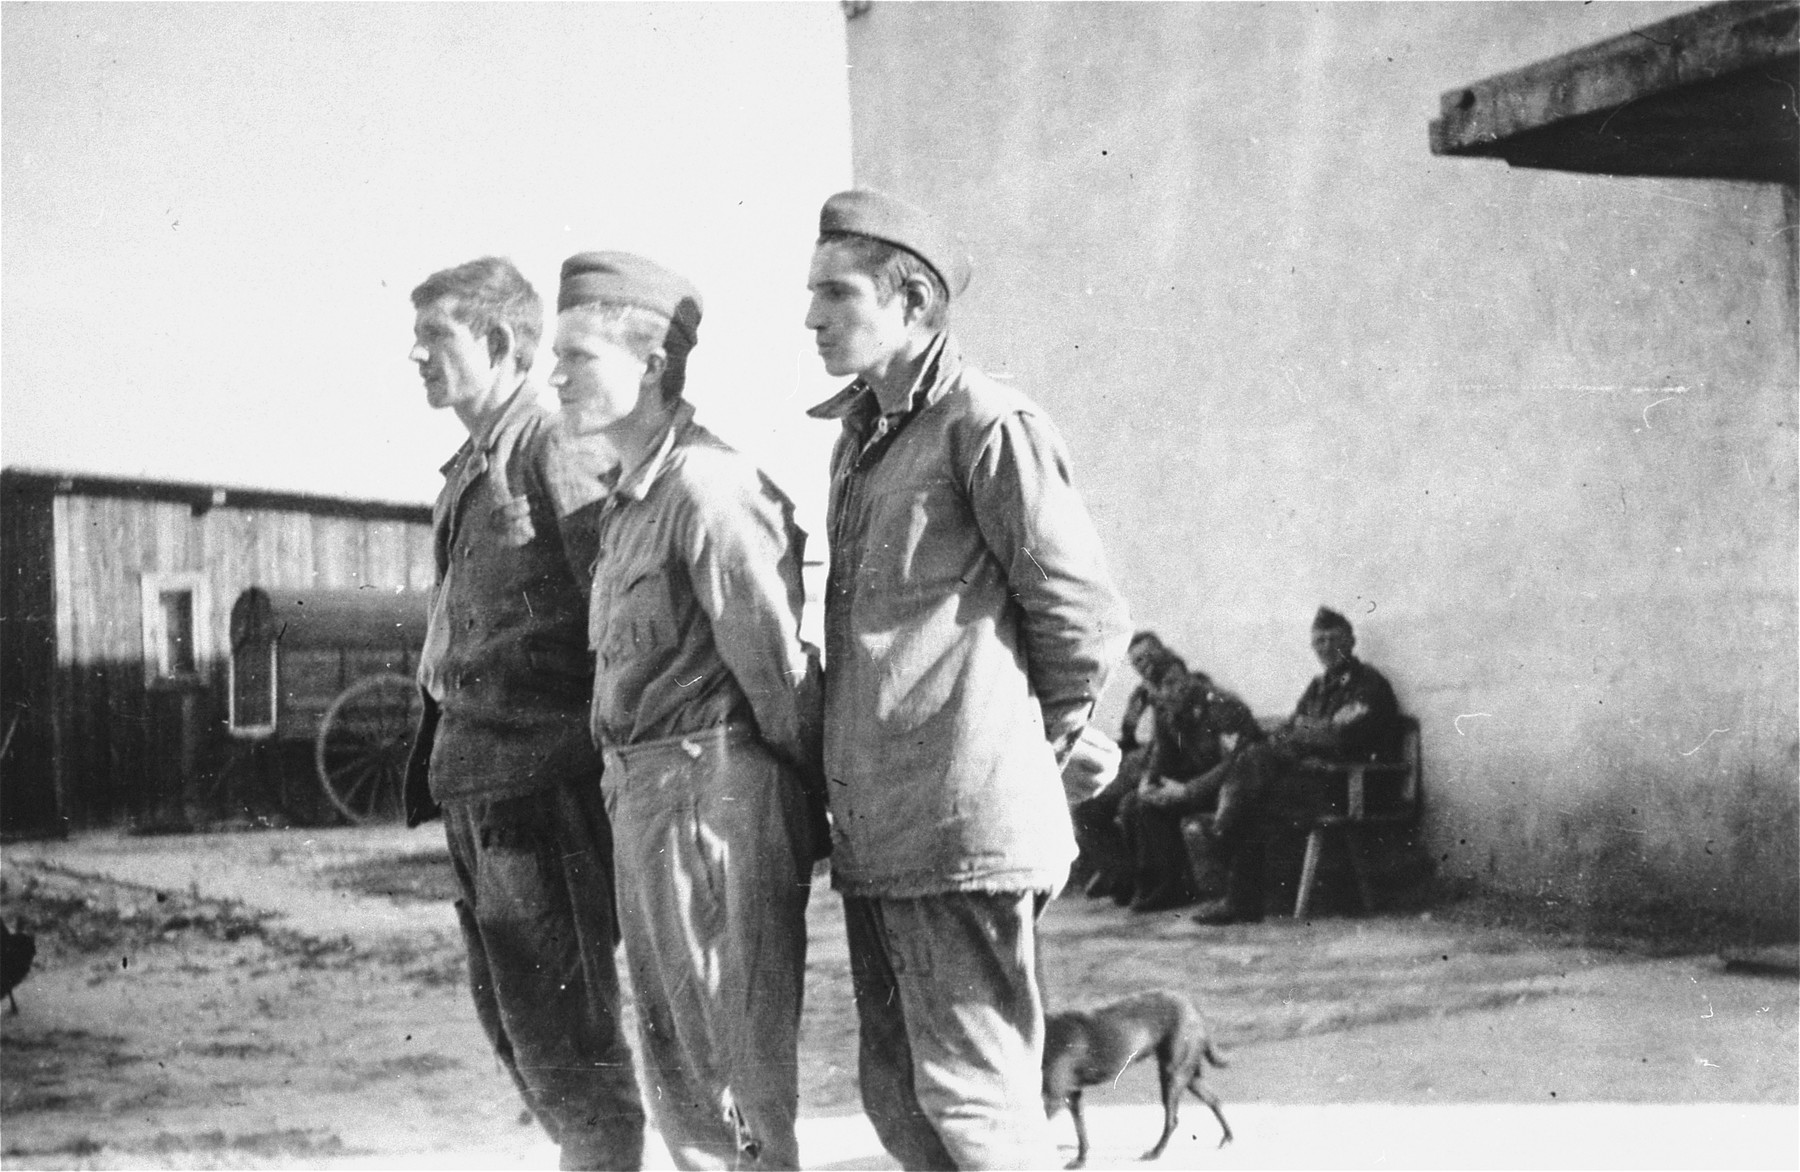 Three Soviet POWs who were captured near Wisznice, stand with their hands tied behind their back.  They were later executed in the Lyniewski Forest.